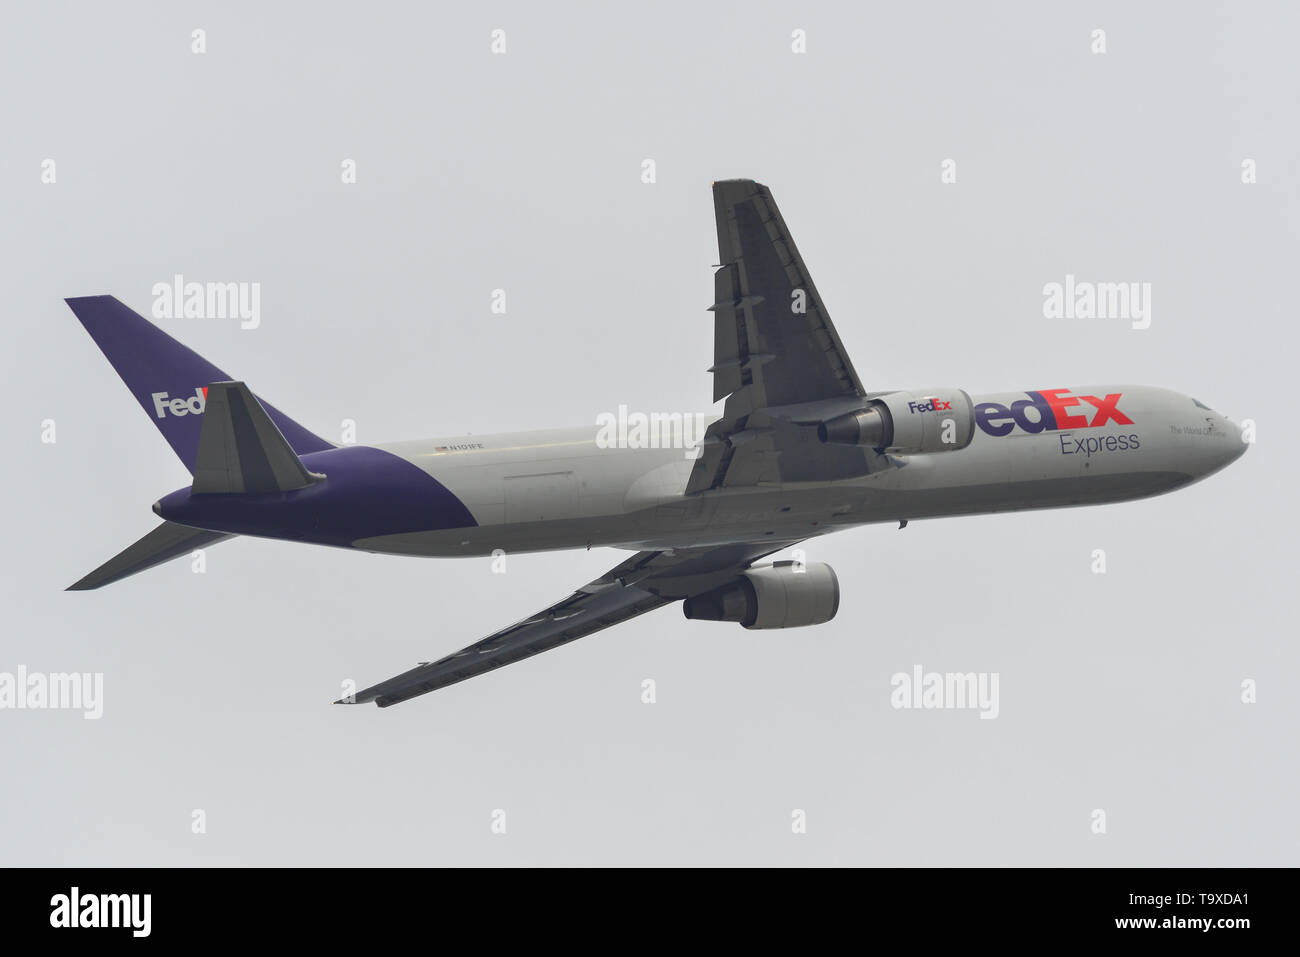 Fedex Ground Stock Photos & Fedex Ground Stock Images - Page 3 - Alamy